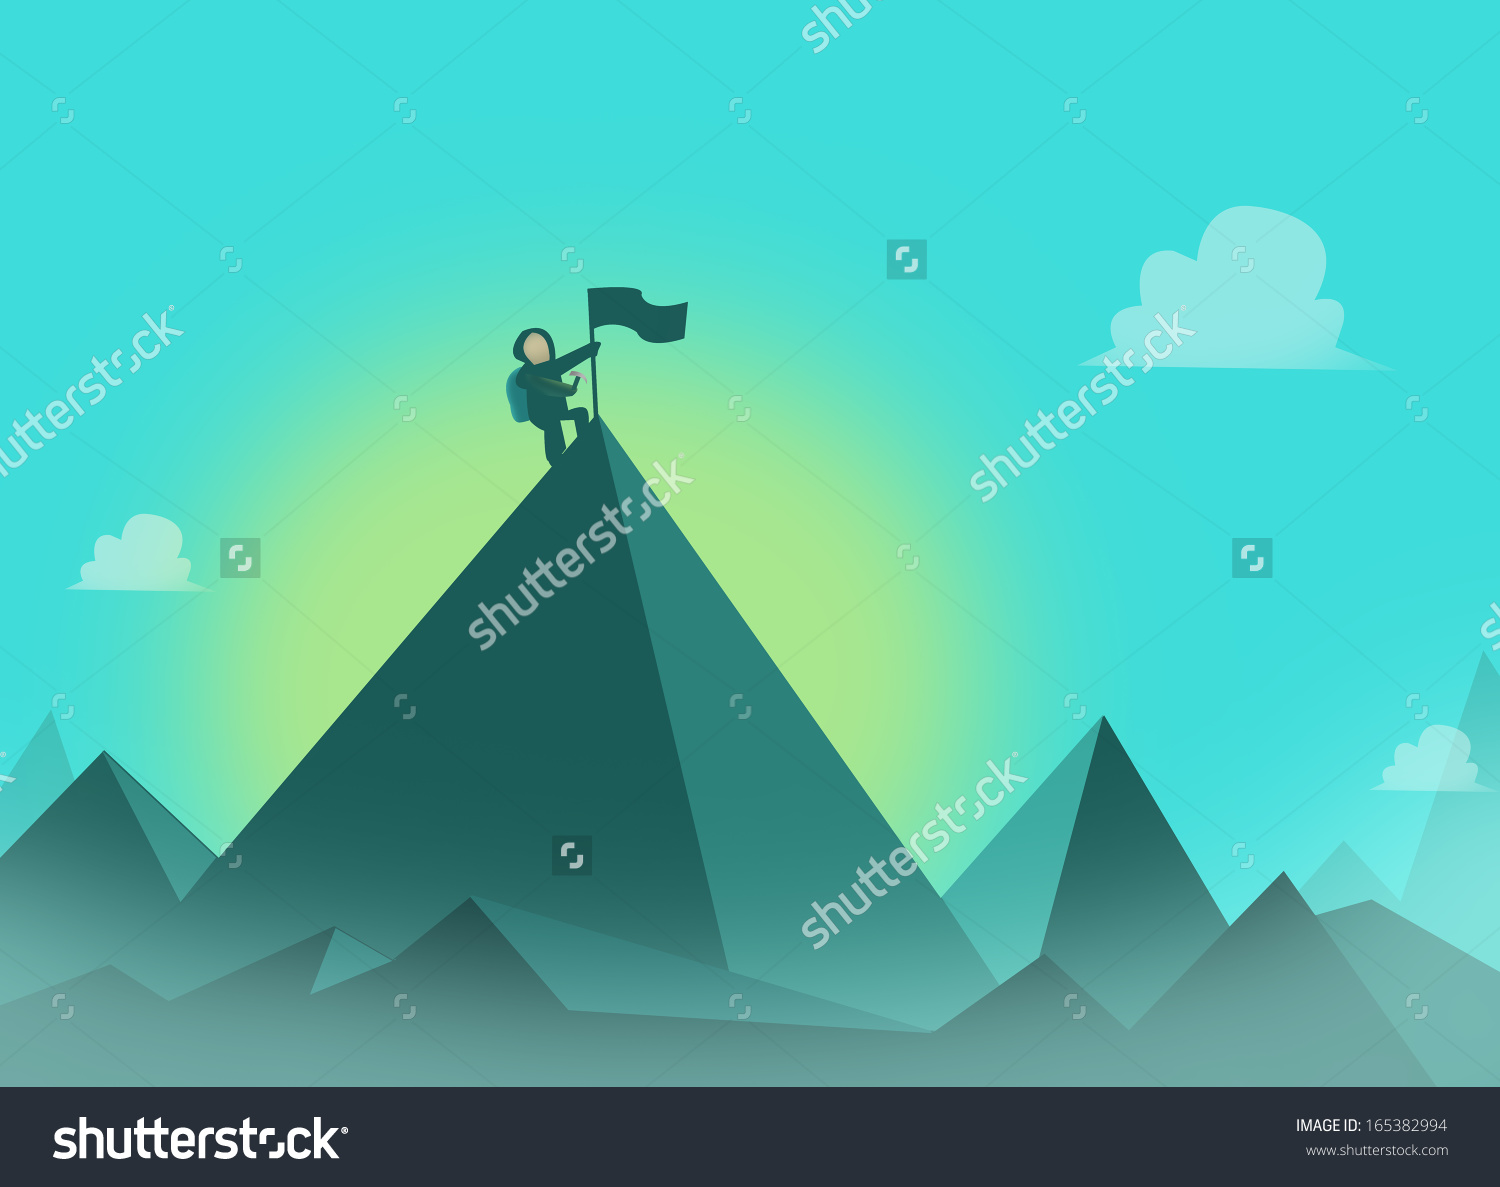 Mountaineer Flag Summit Mountaineering Concept Illustration Stock.